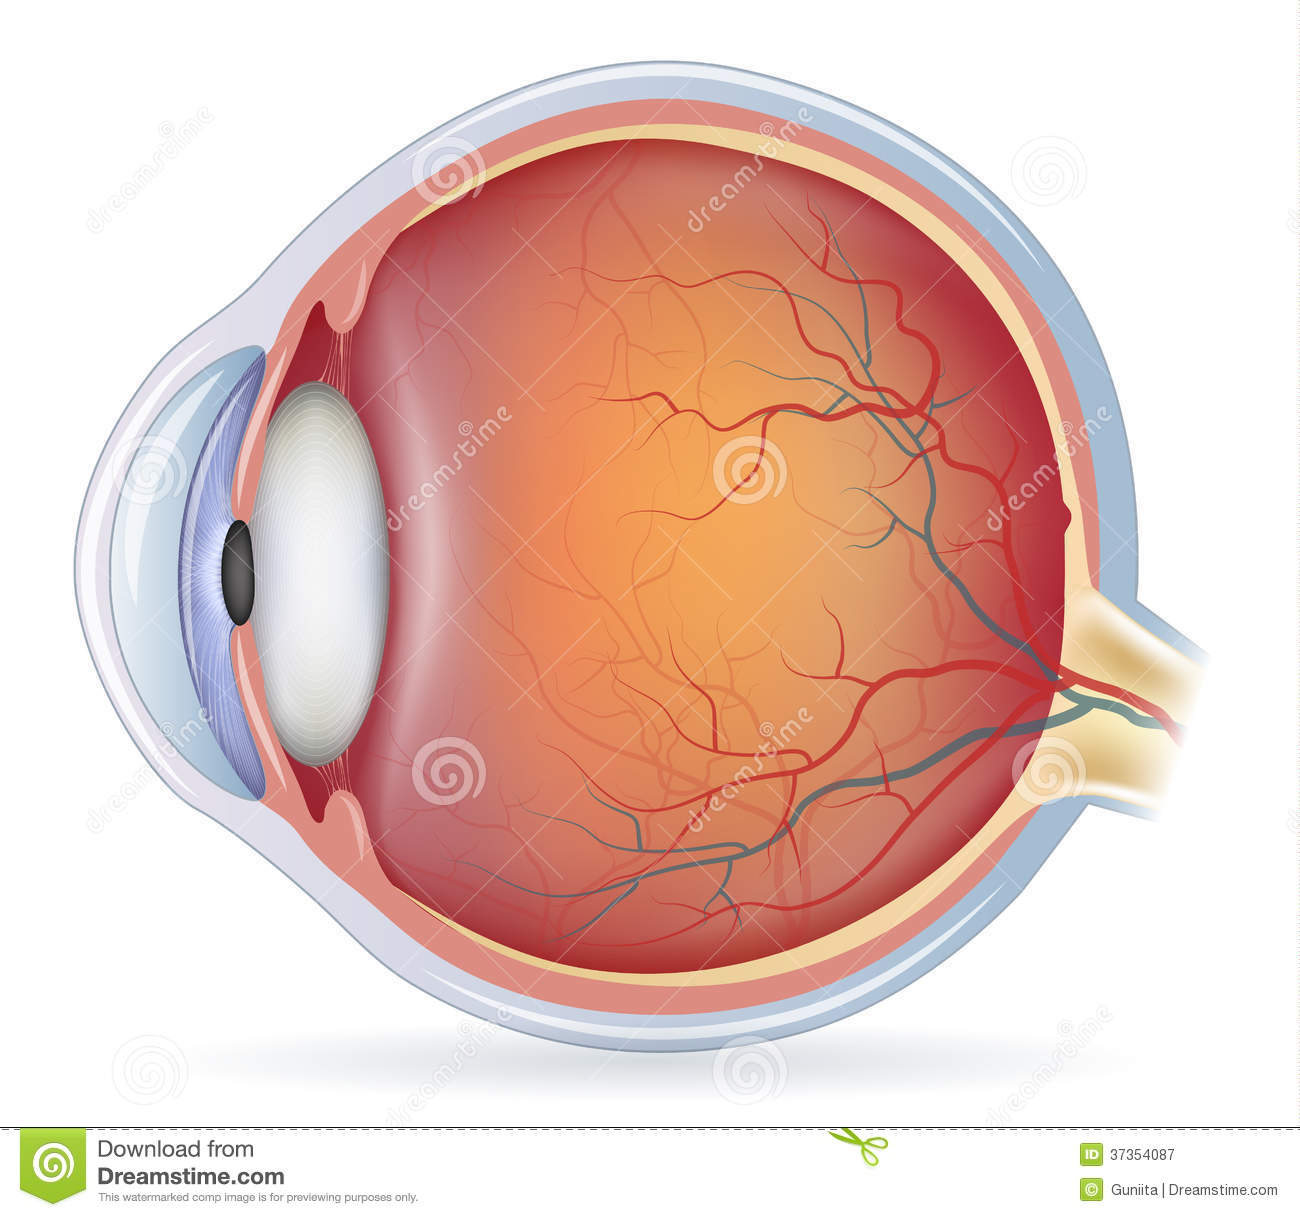 Human eye anatomy stock vector. Illustration of diagram - 37354087